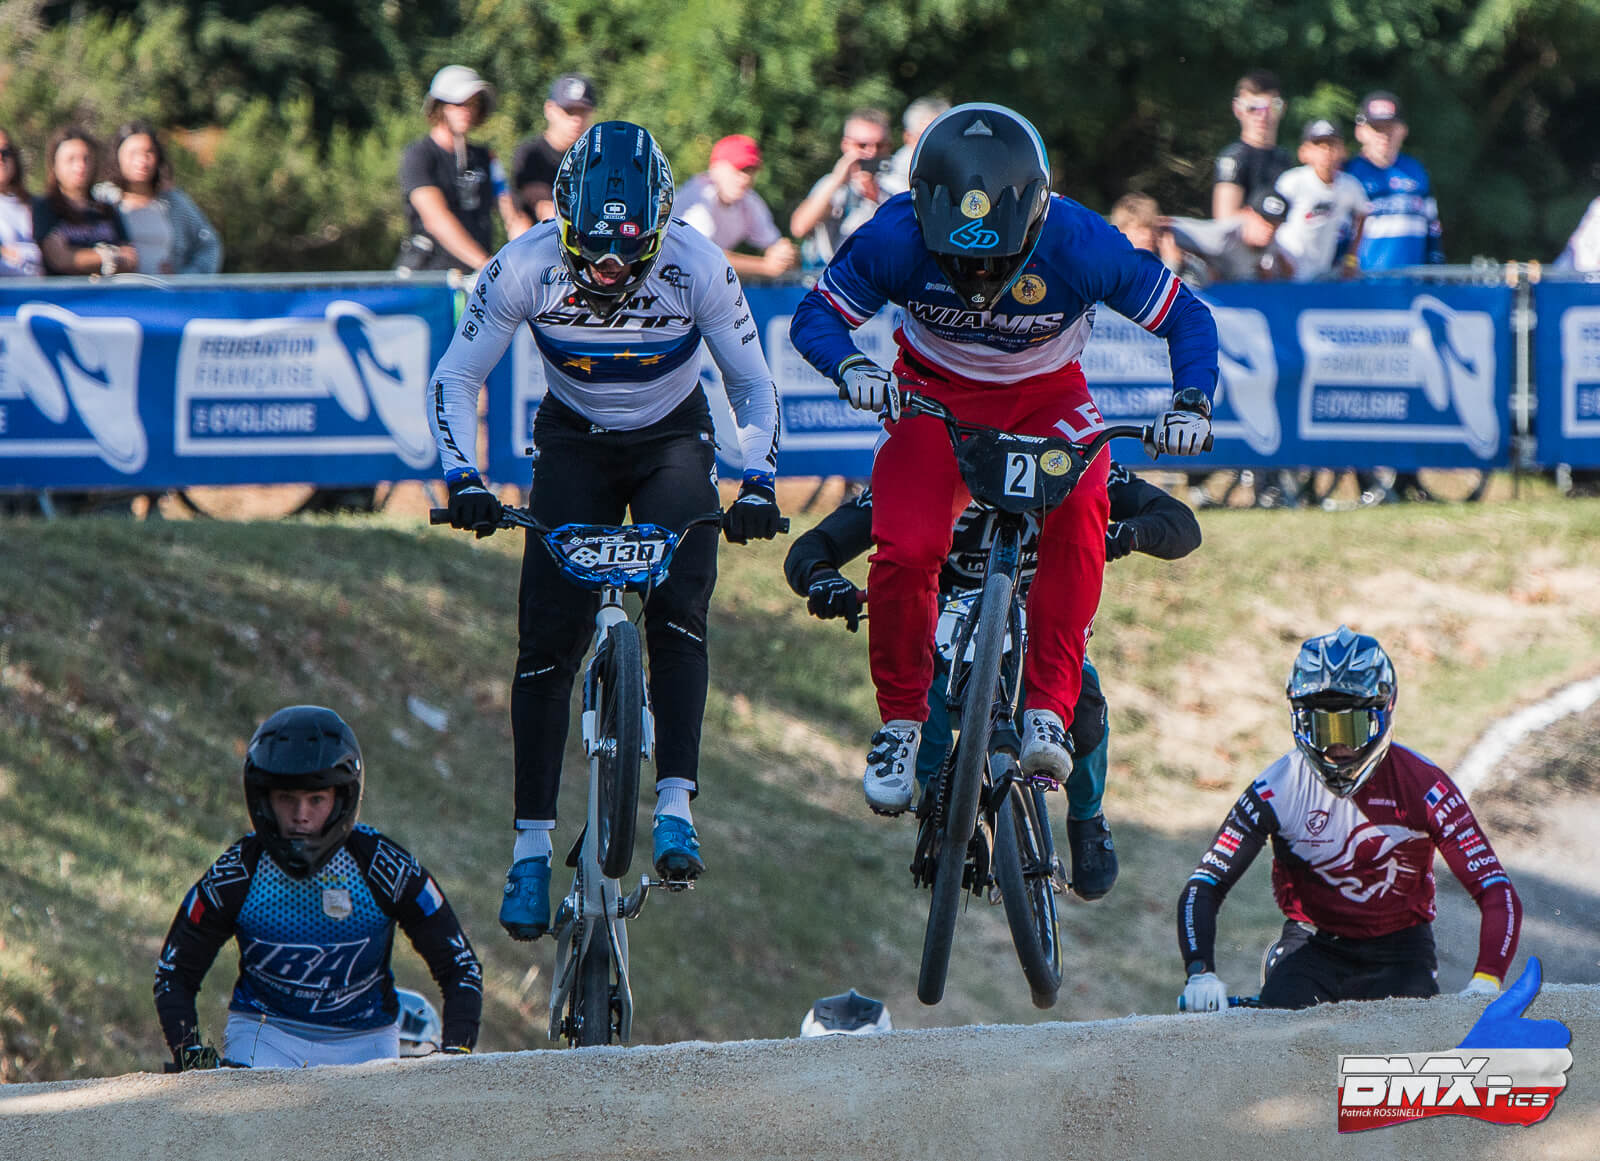 2021 French Cup Mours - BmxPics.fr - 003